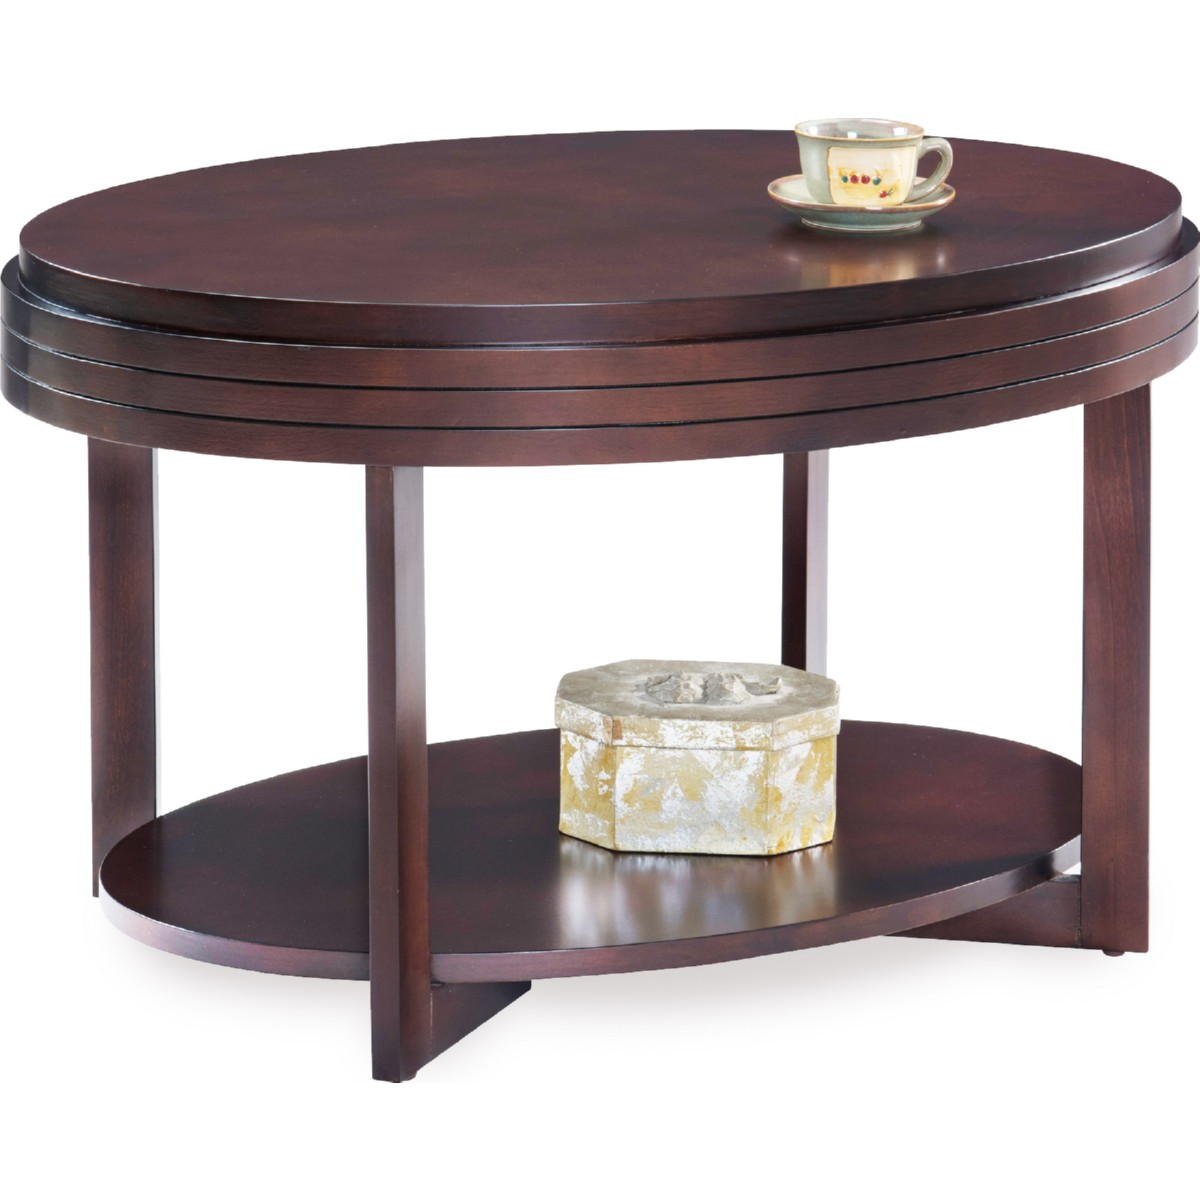 leick furniture oval small coffee table in chocolate cherry finish w diamond match top - Leick Furniture